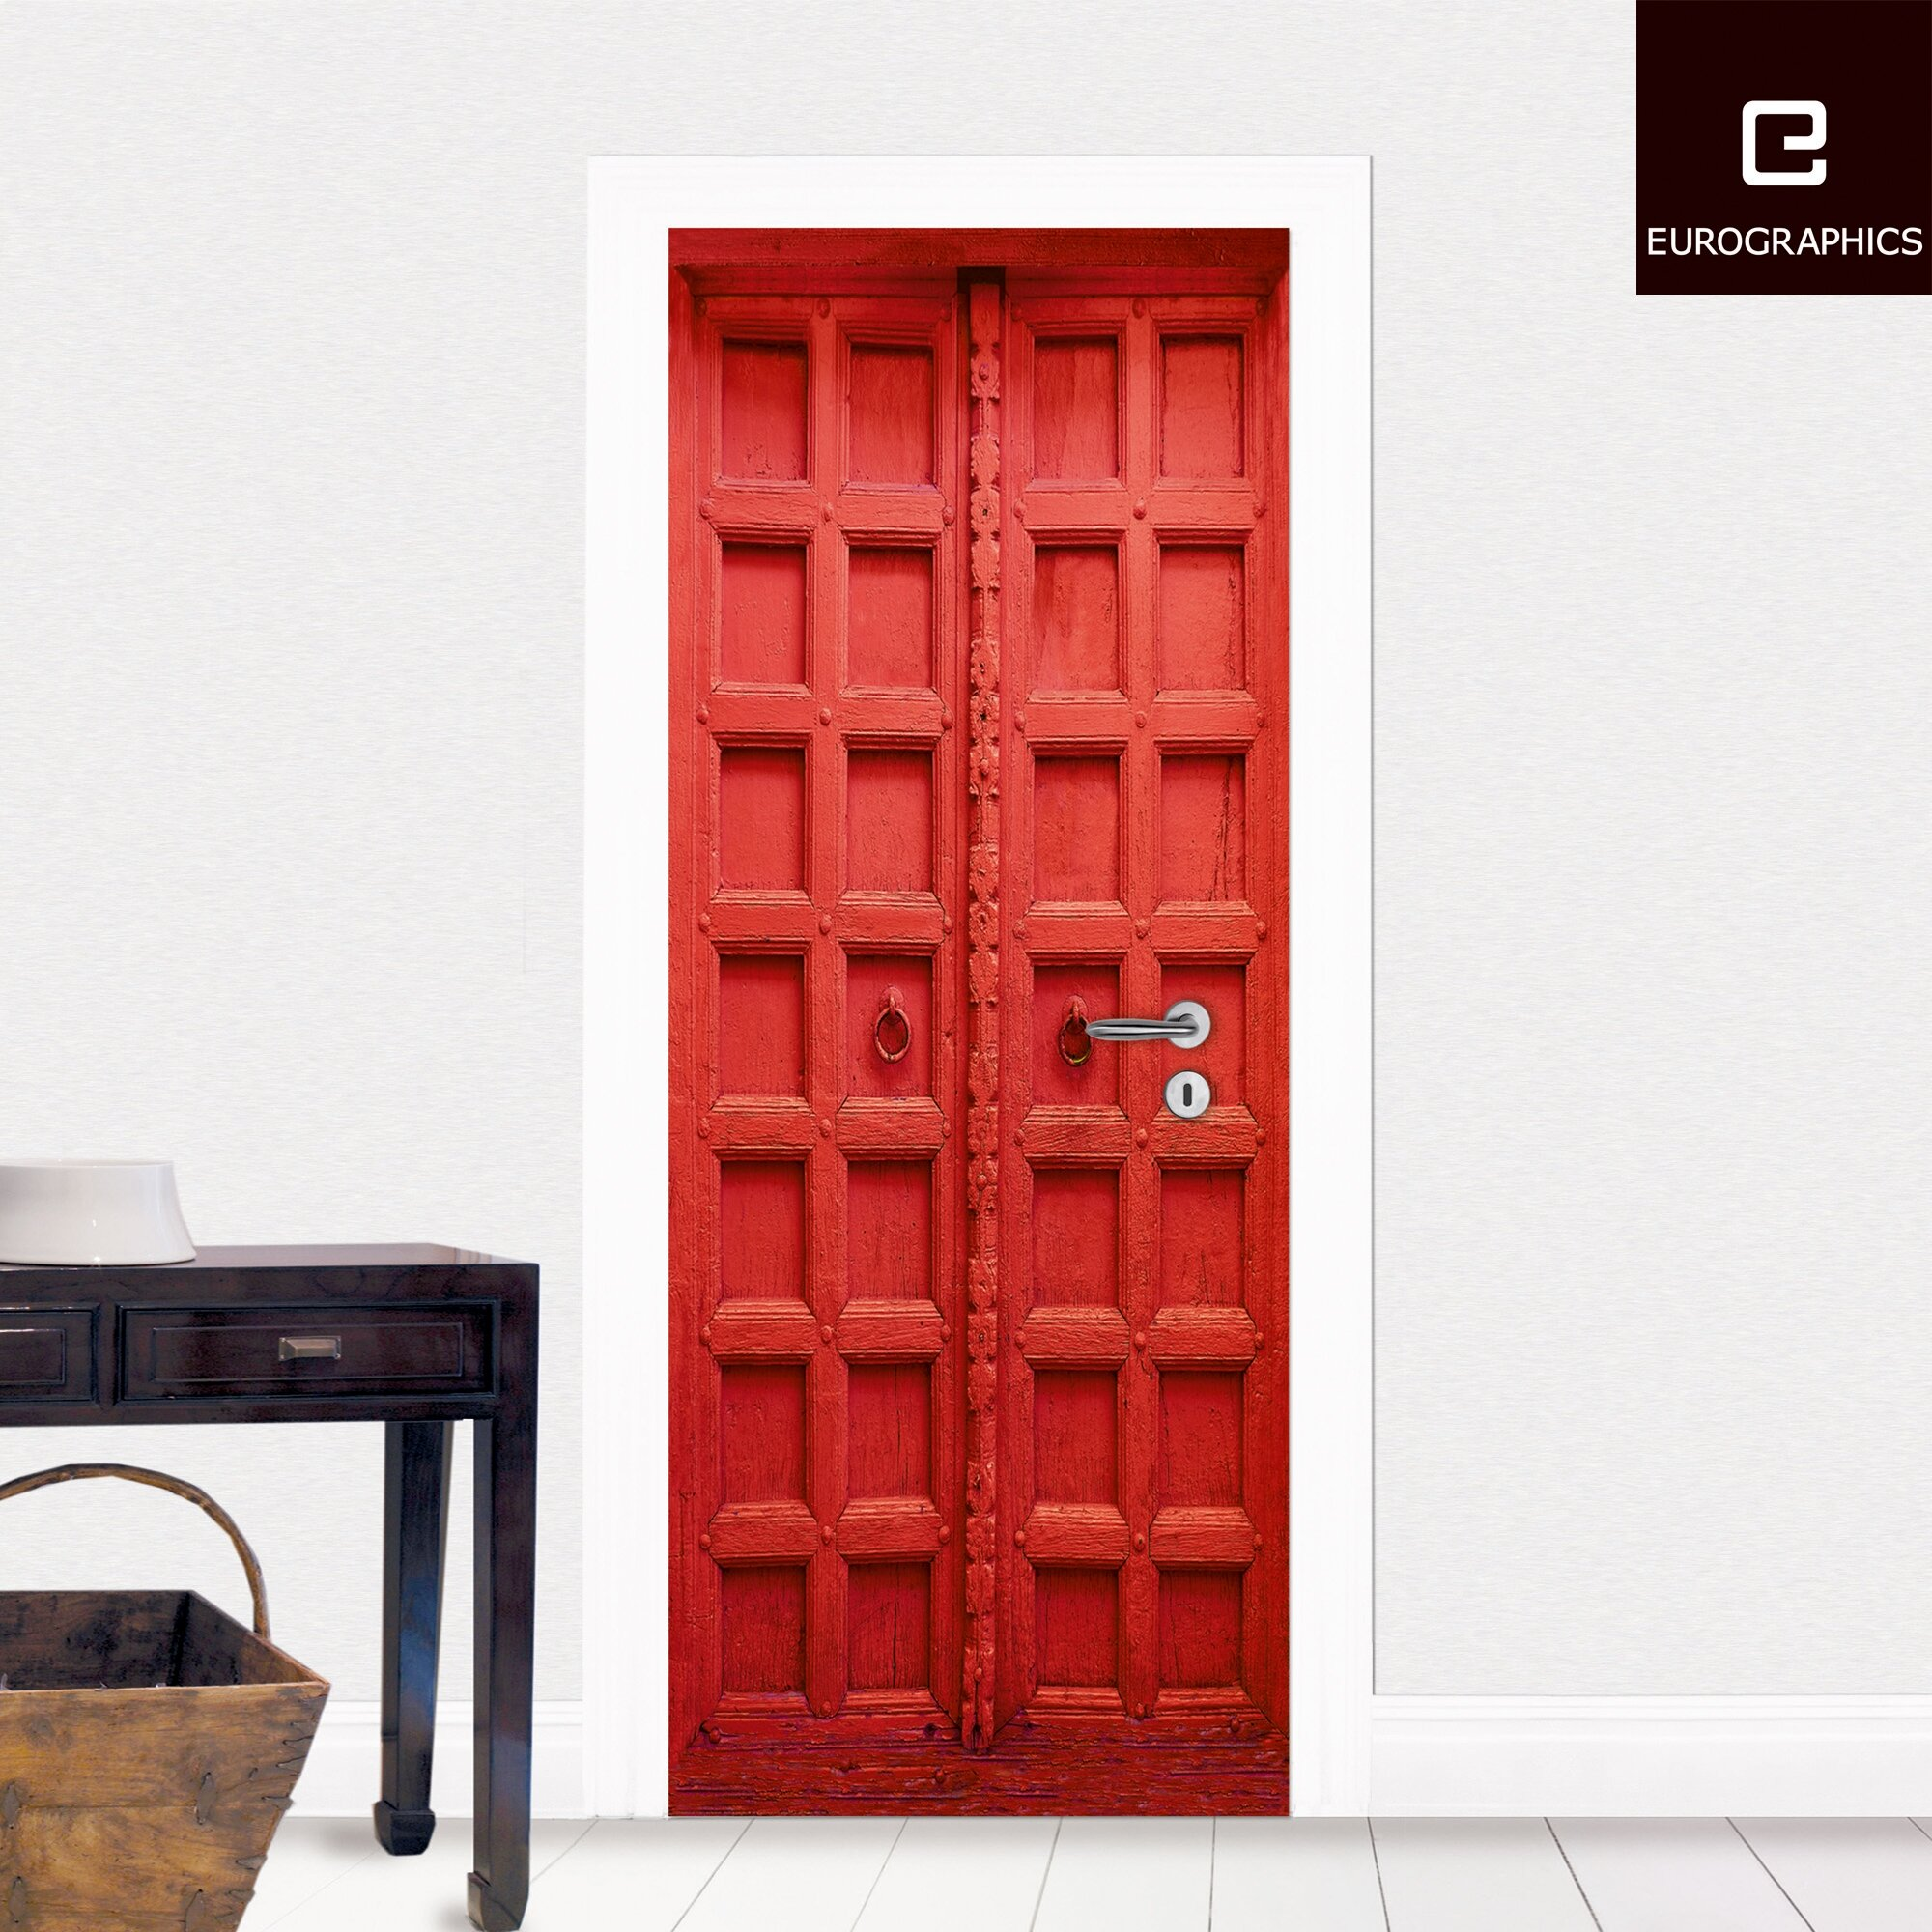 Eurographics red door wall mural wayfair uk for Door wall mural